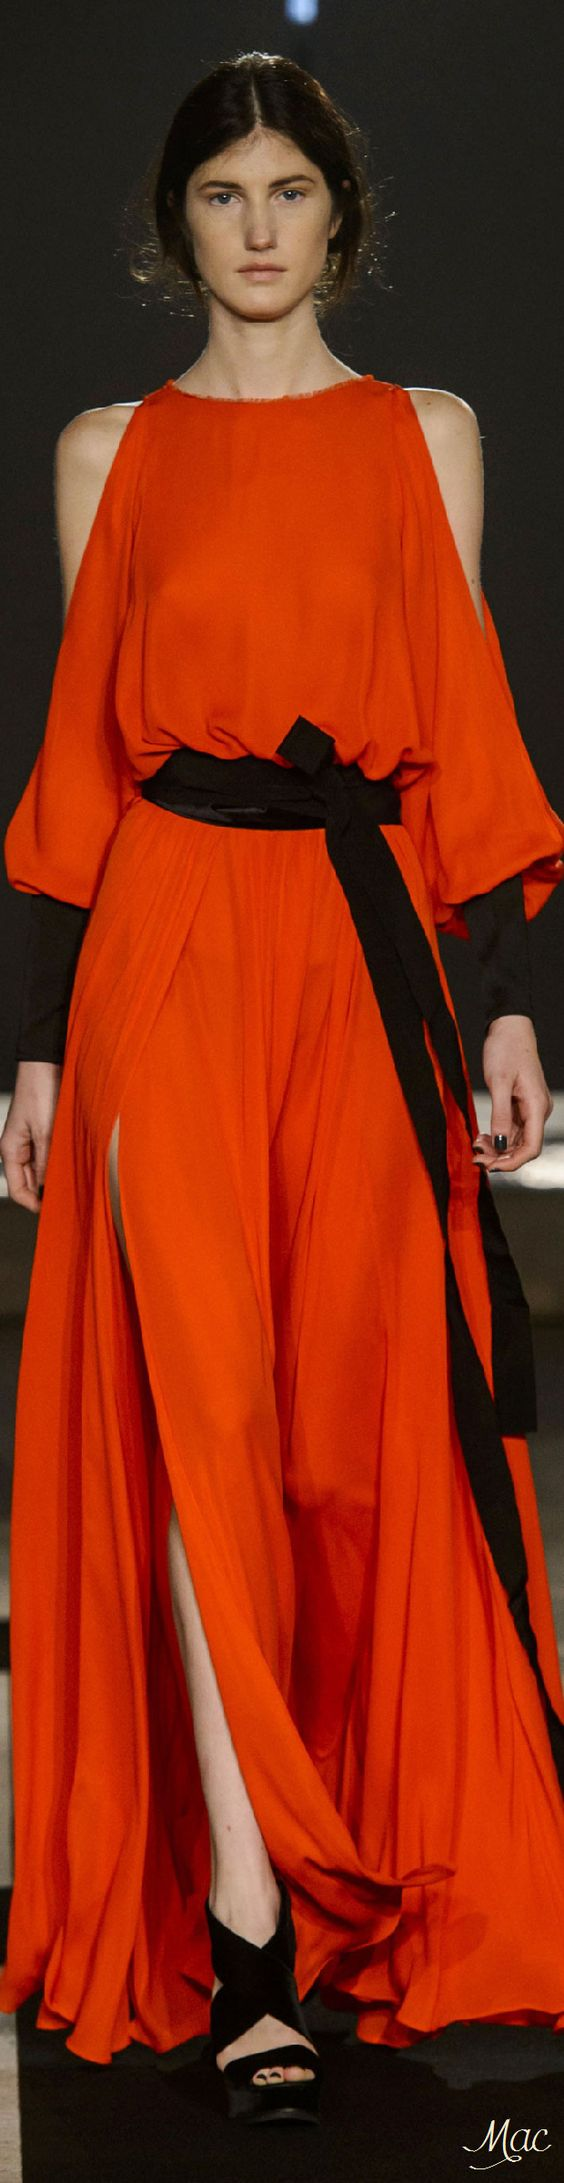 Fall 2016 Ready-to-Wear Amanda Wakeley